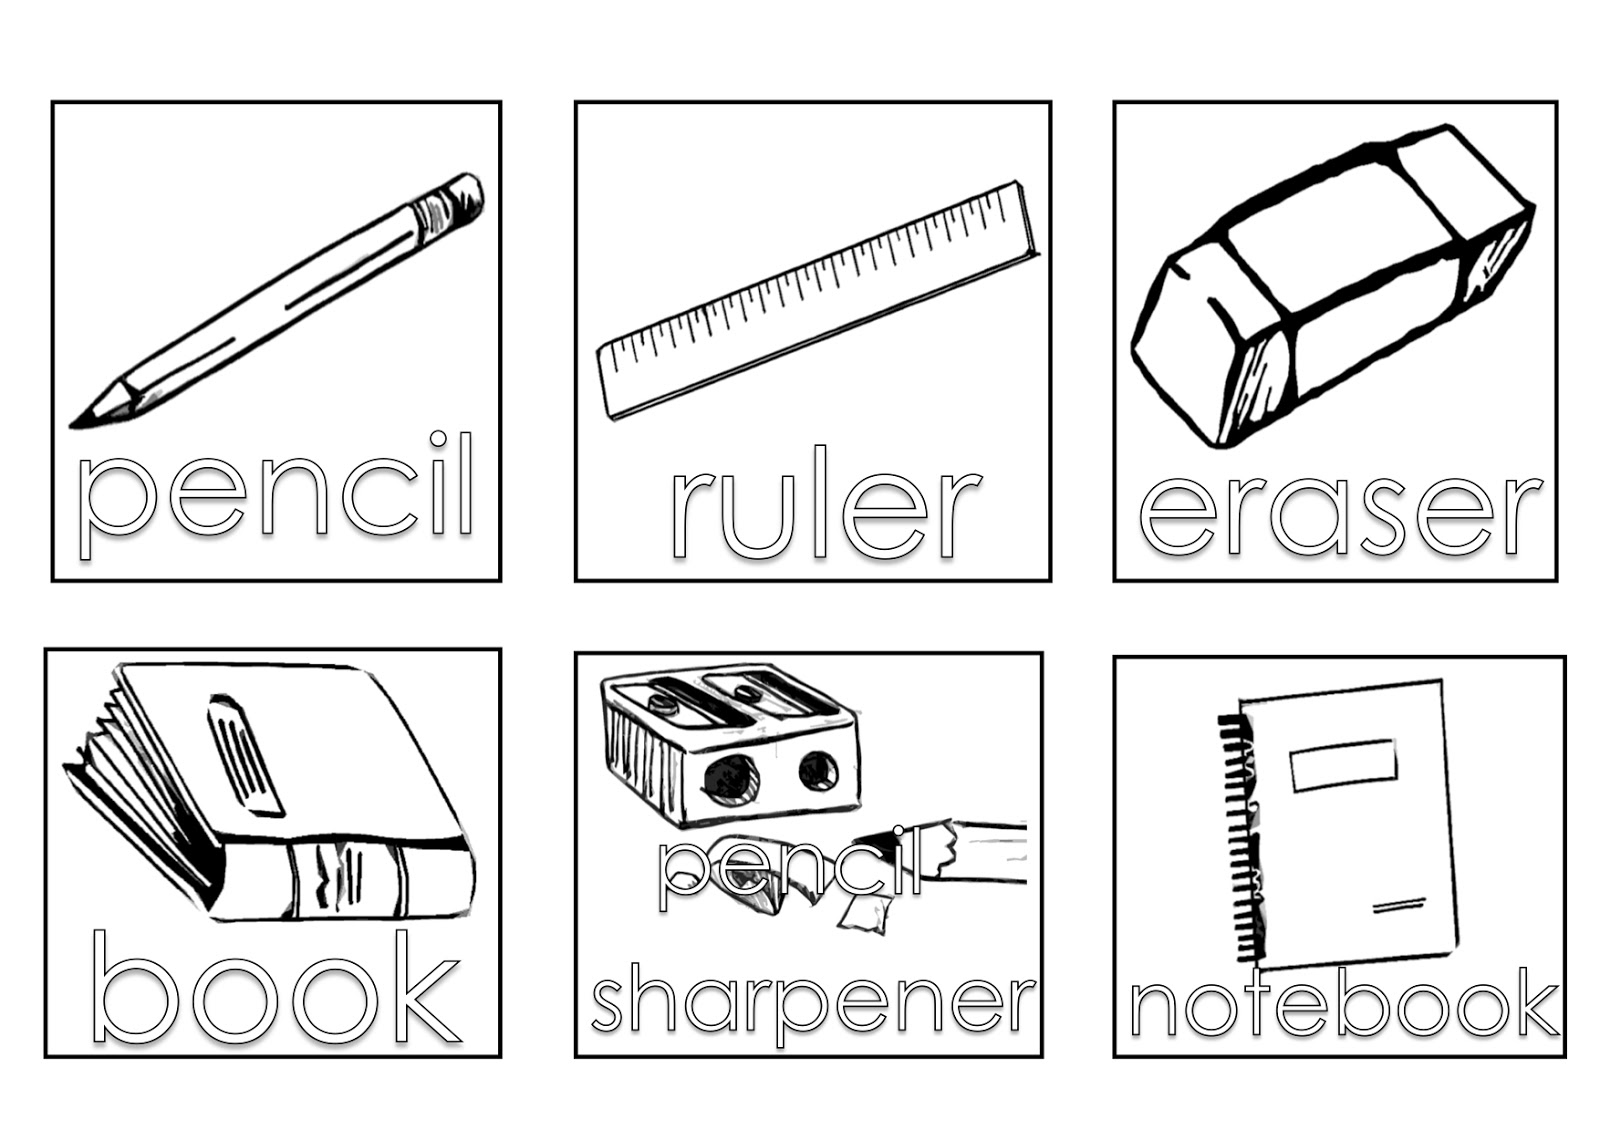 school objects coloring pages school equipment 4 objects printable coloring pages pages coloring school objects